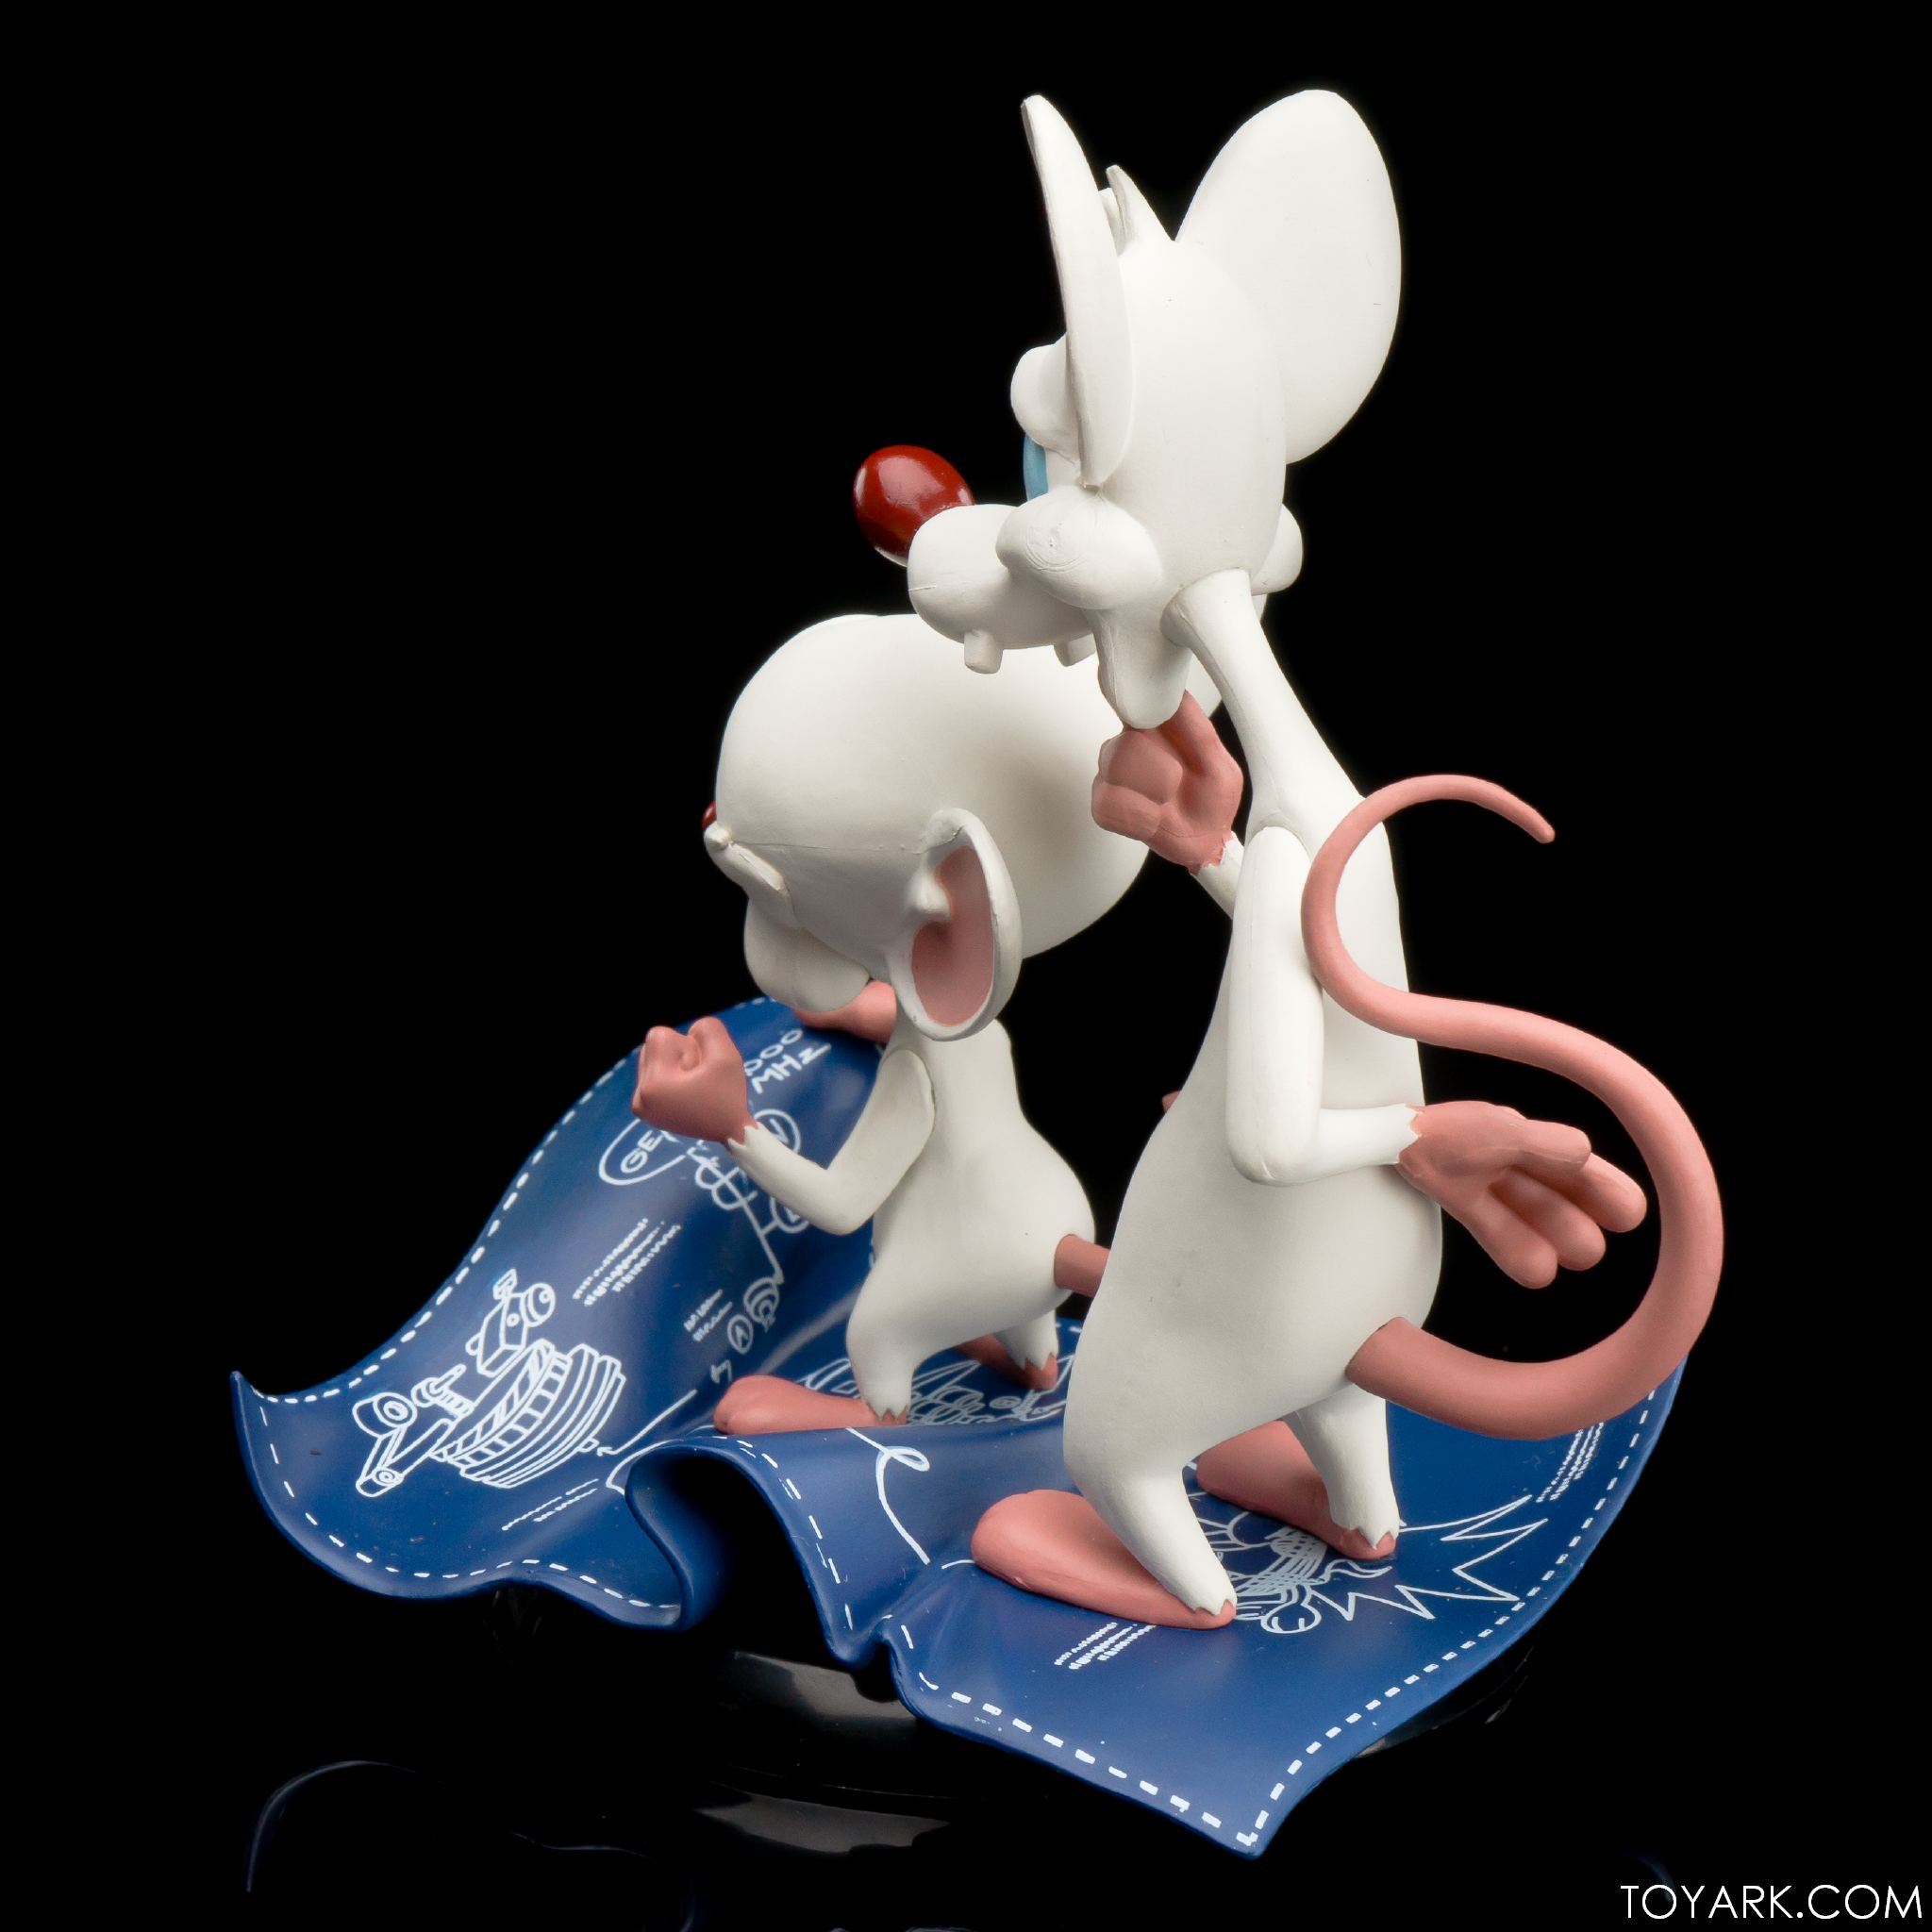 Qmx pinky and the brain q fig photo review the toyark news qmx pinky brain 03 thecheapjerseys Images